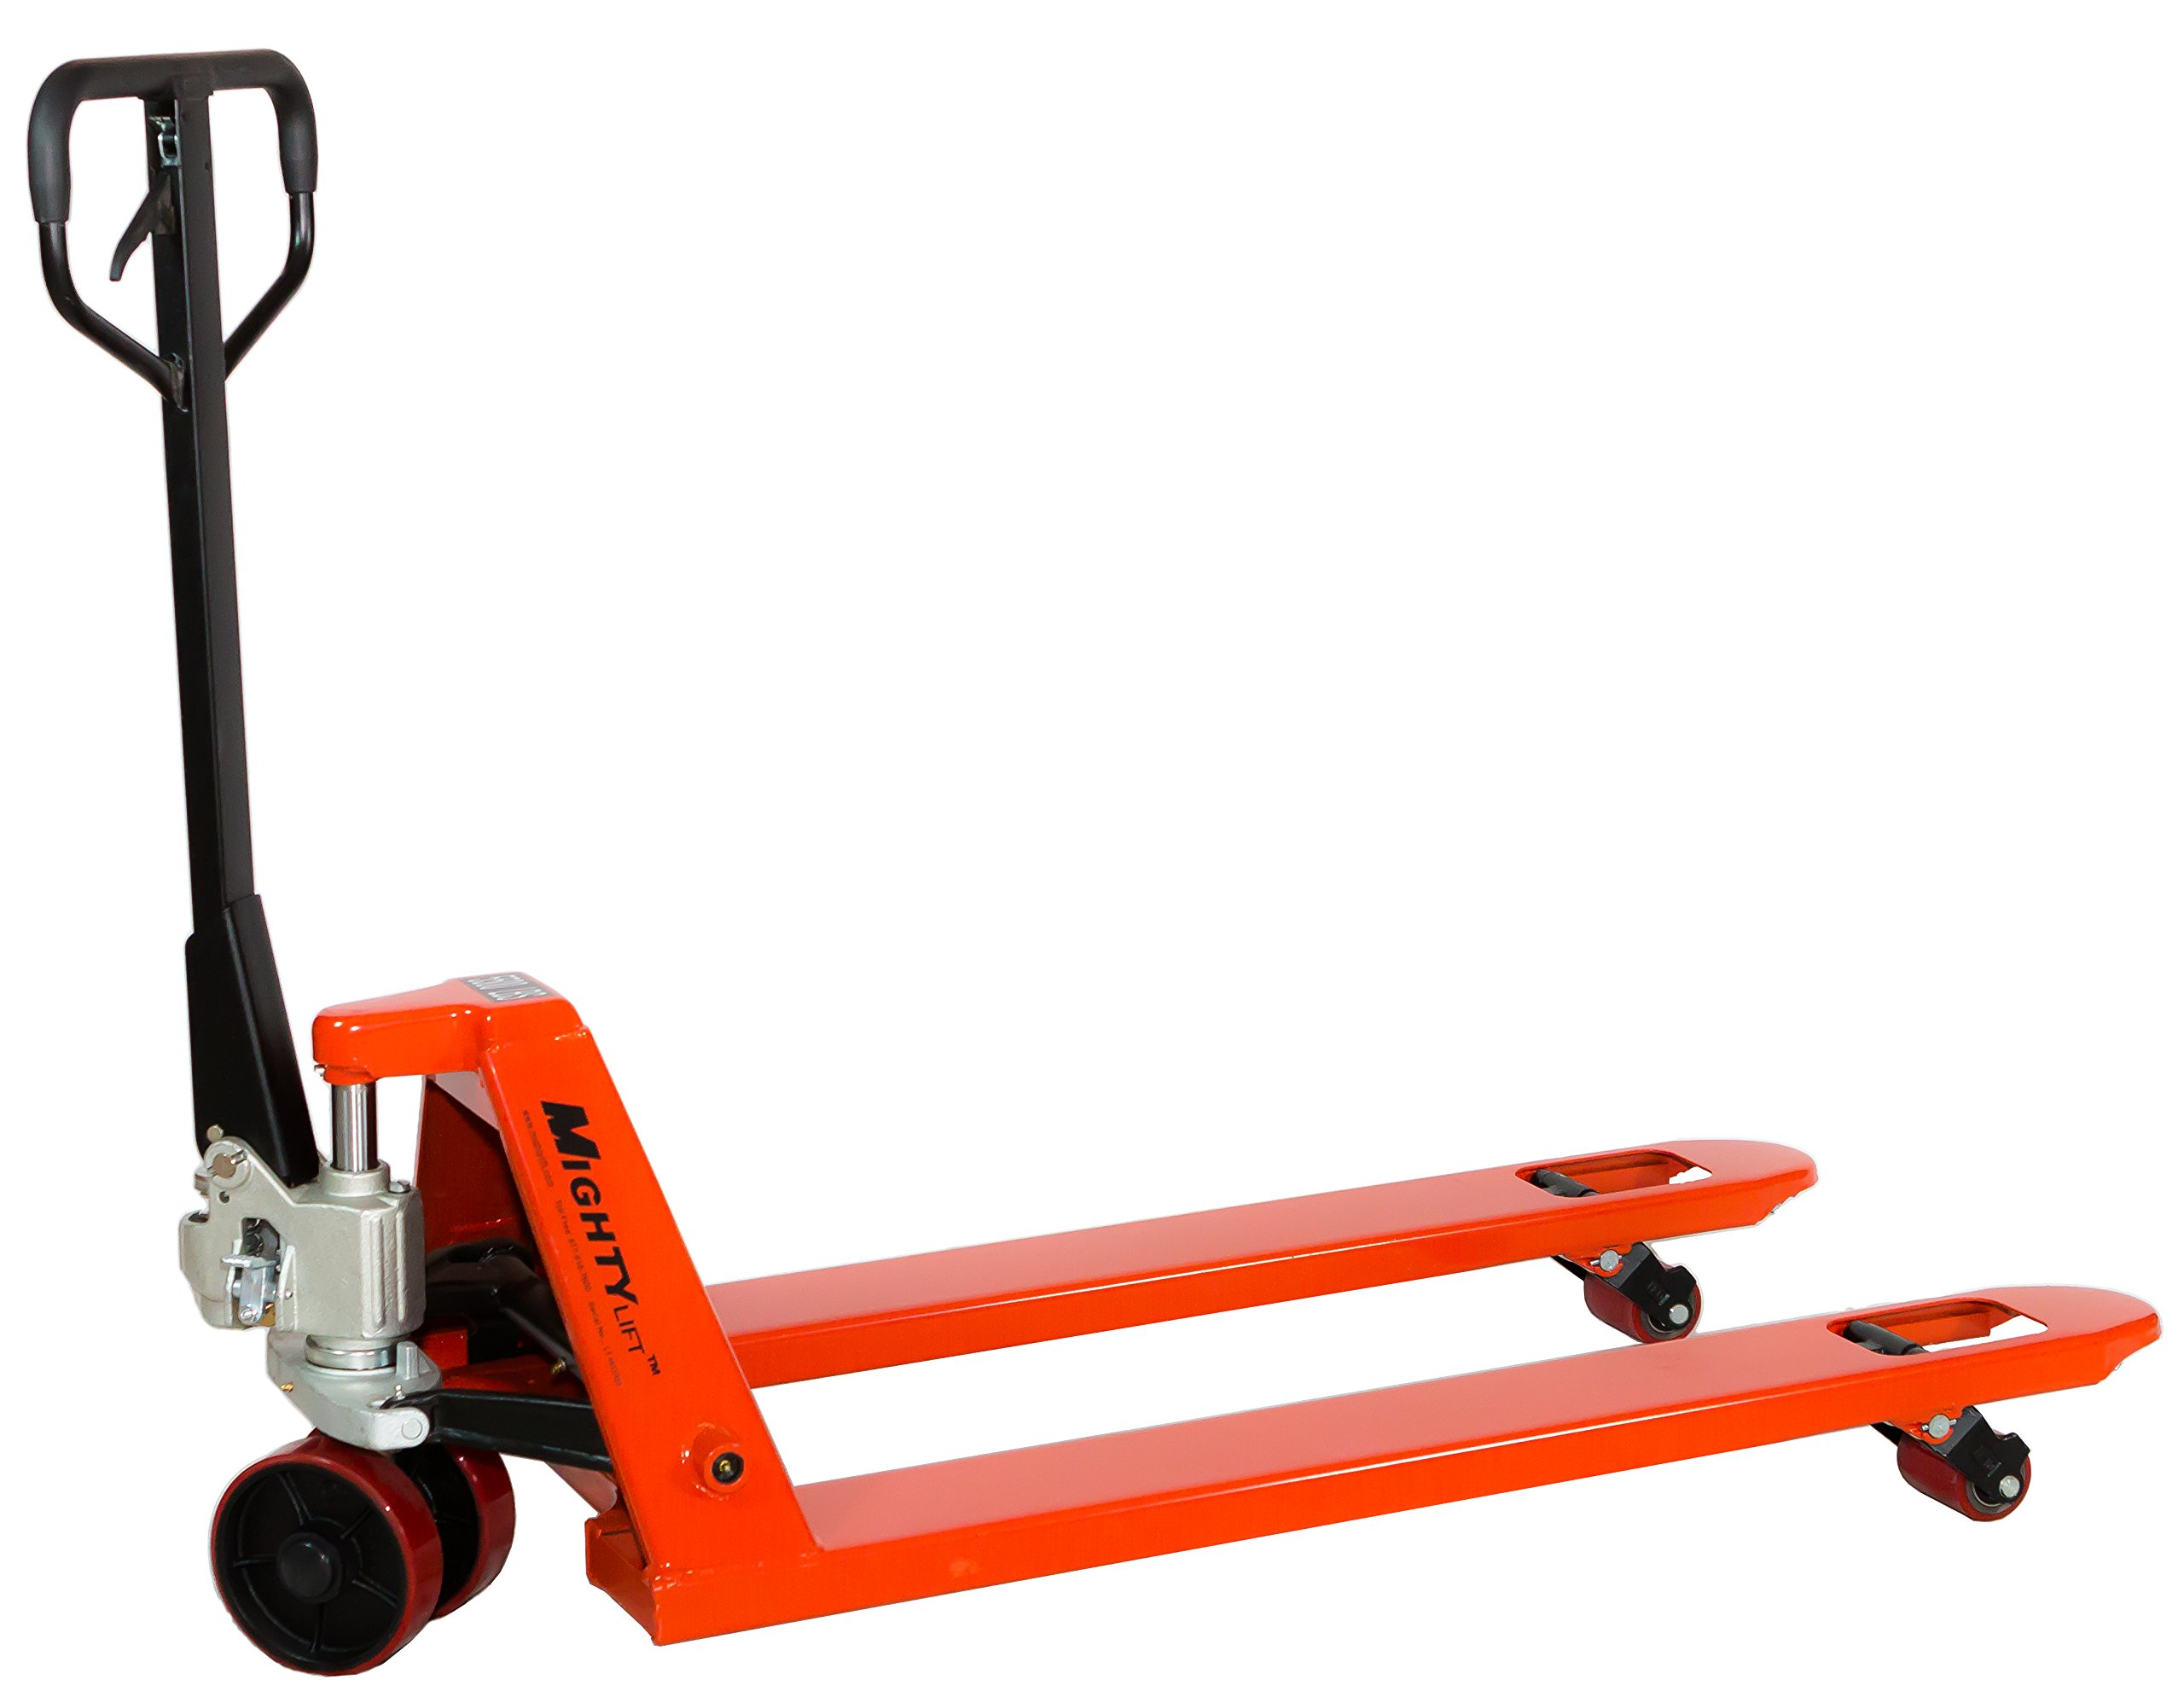 Mighty Lift ML55-2 Heavy Duty Pallet Jack Truck, Wheels: Polyurethane on Steel, 50'' Height, 27'' Width, 60'' Length, 5500 lbs. Load Capacity, Orange